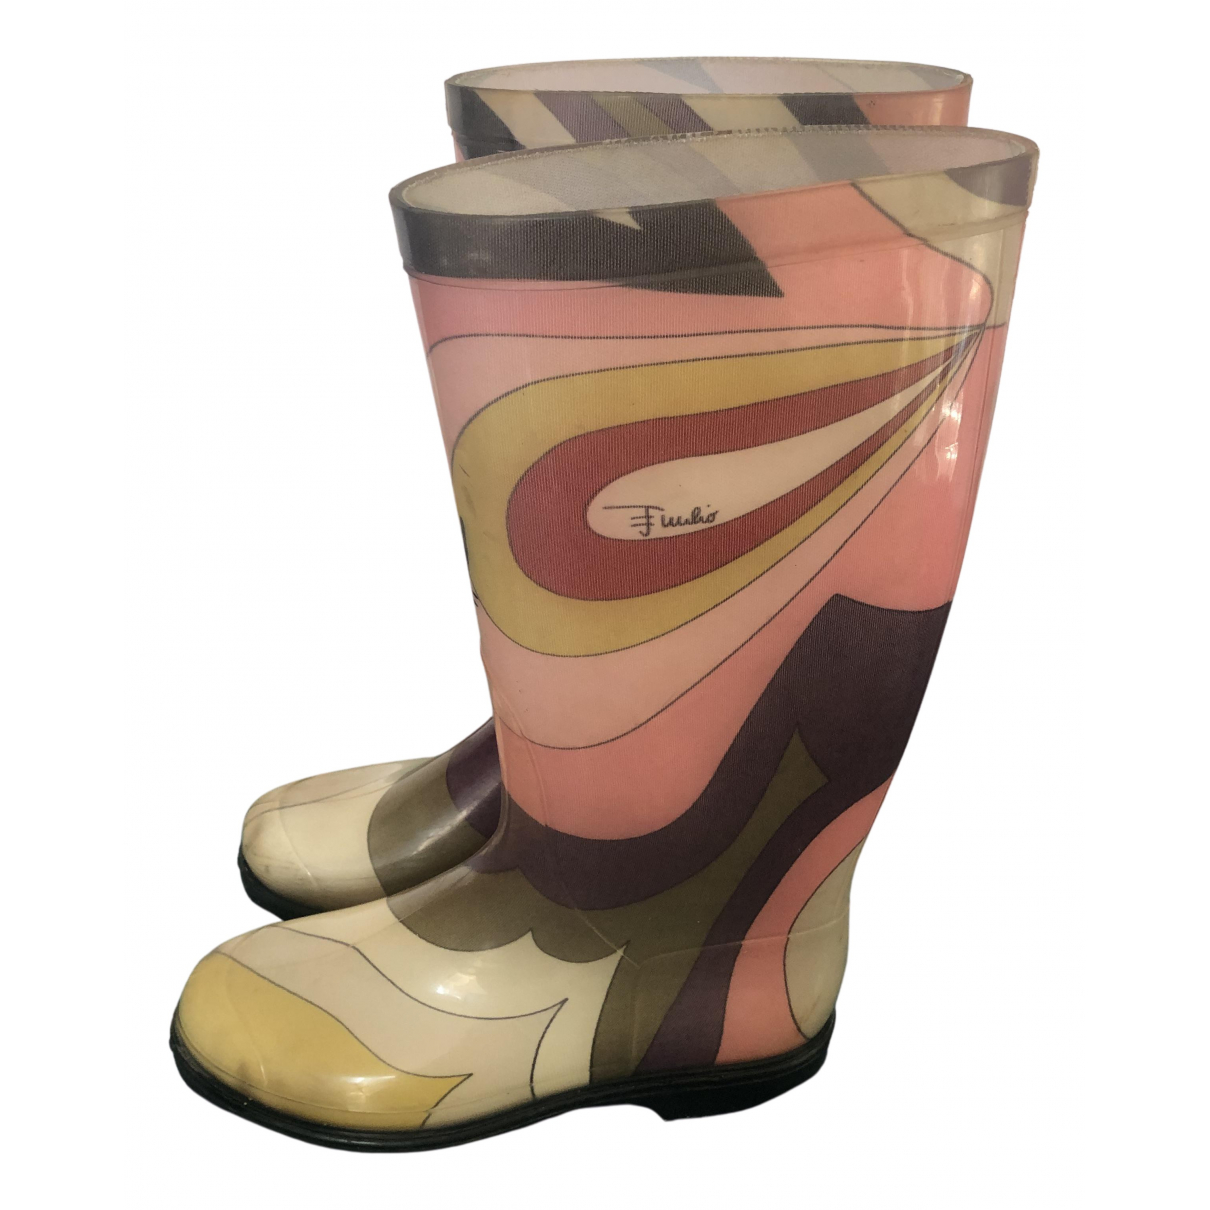 Emilio Pucci N Boots for Women 36 IT